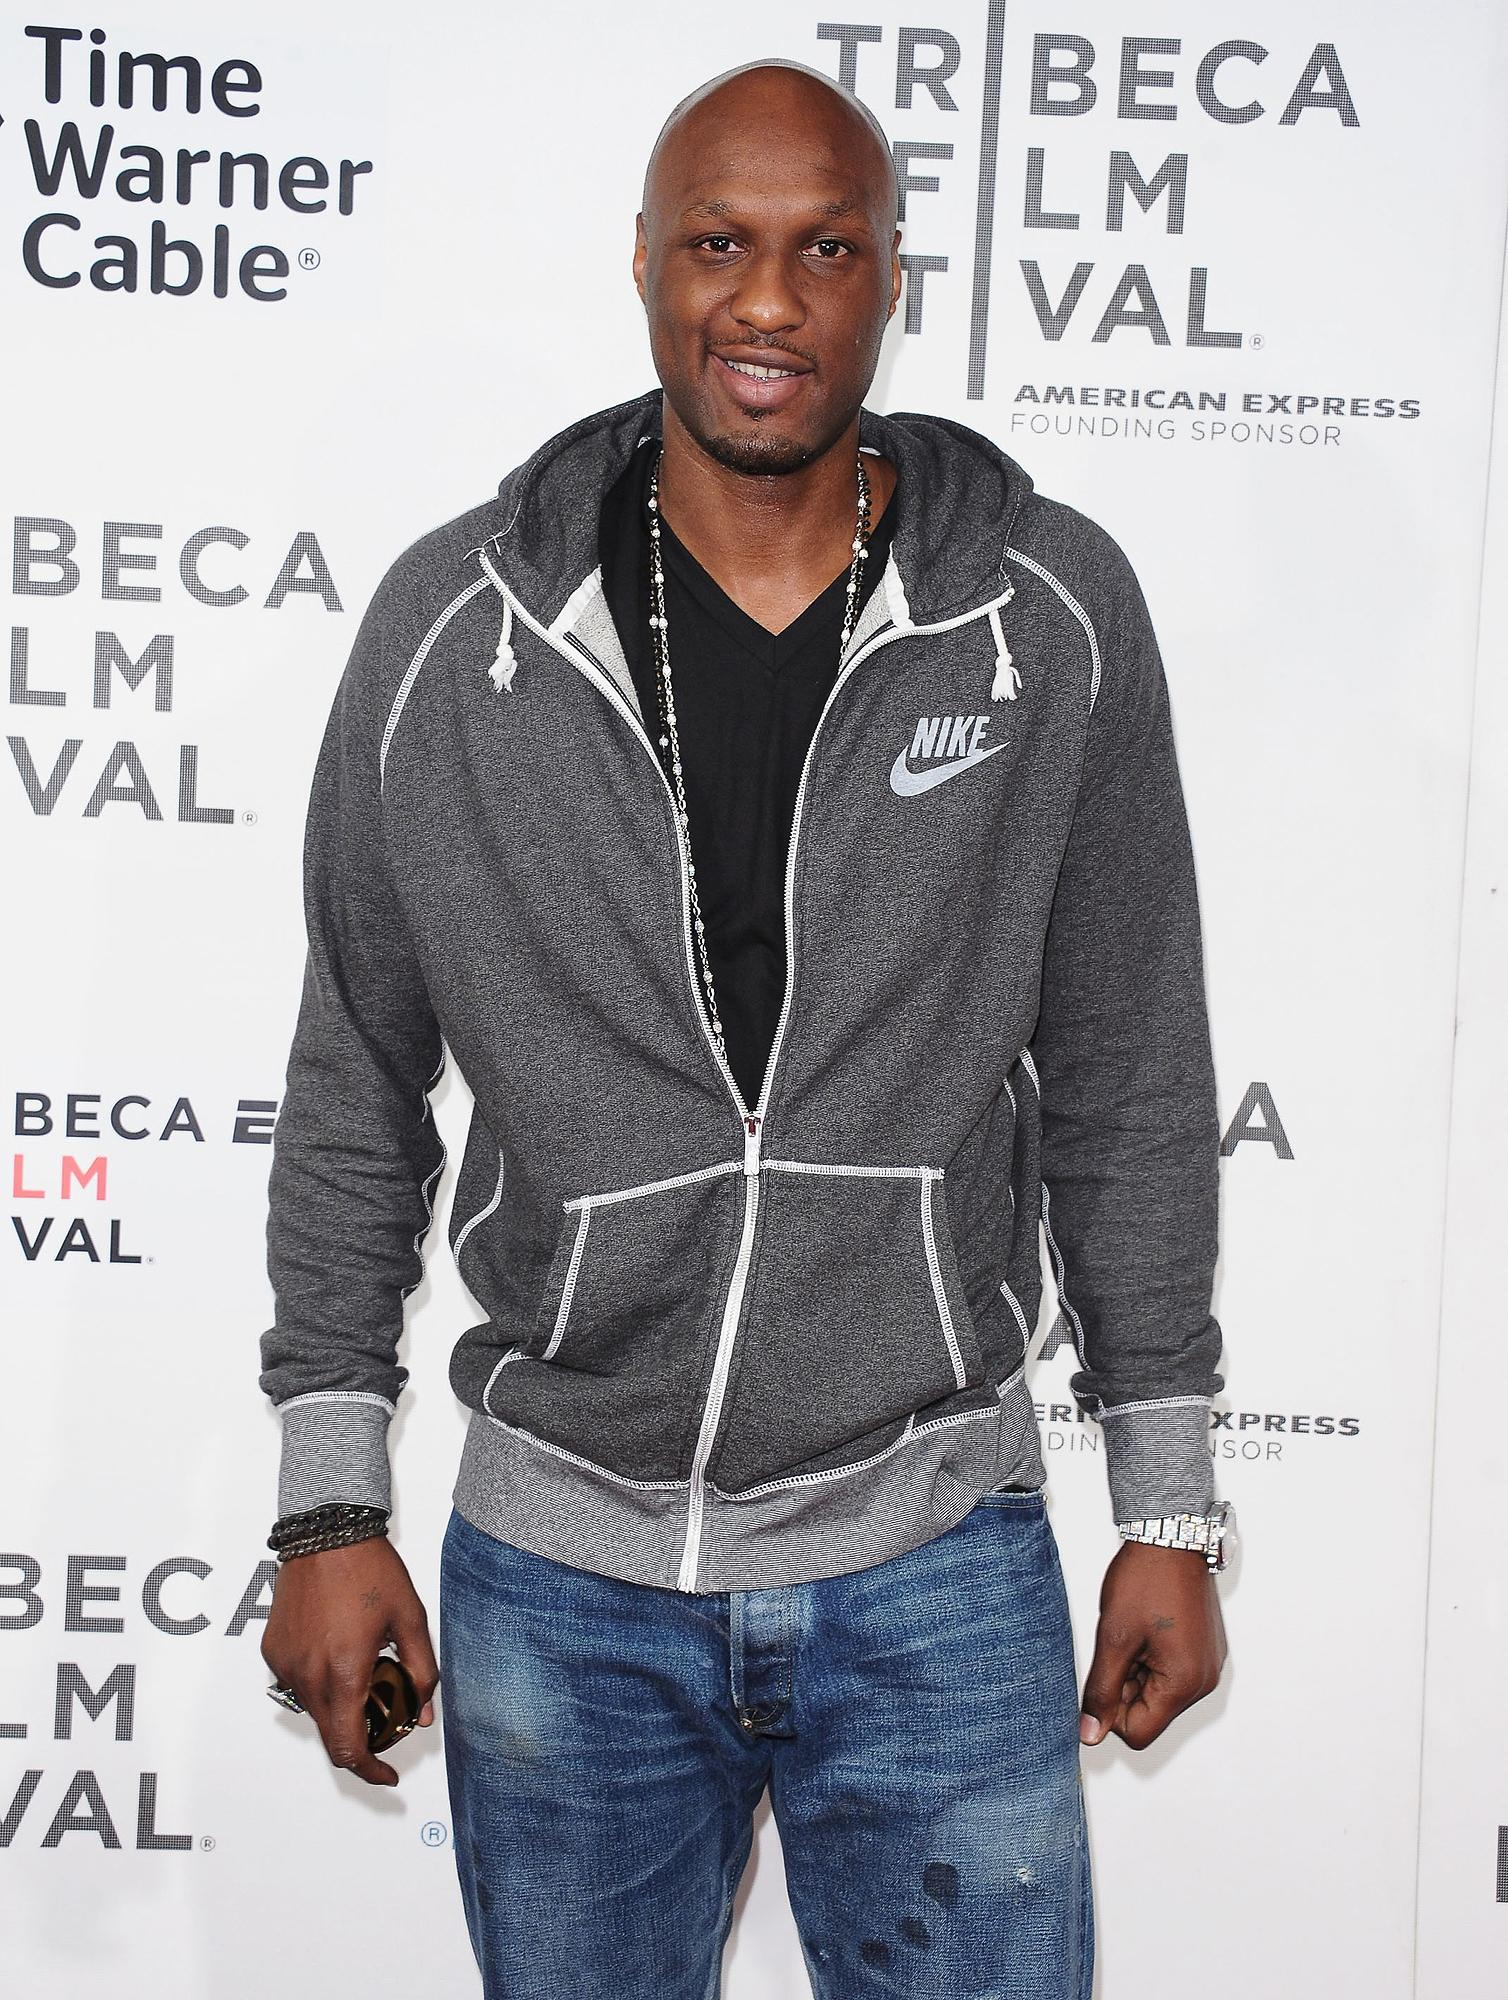 Lamar Odom Is 'Happy and Doing Great' as He Leaves Rehab Stint